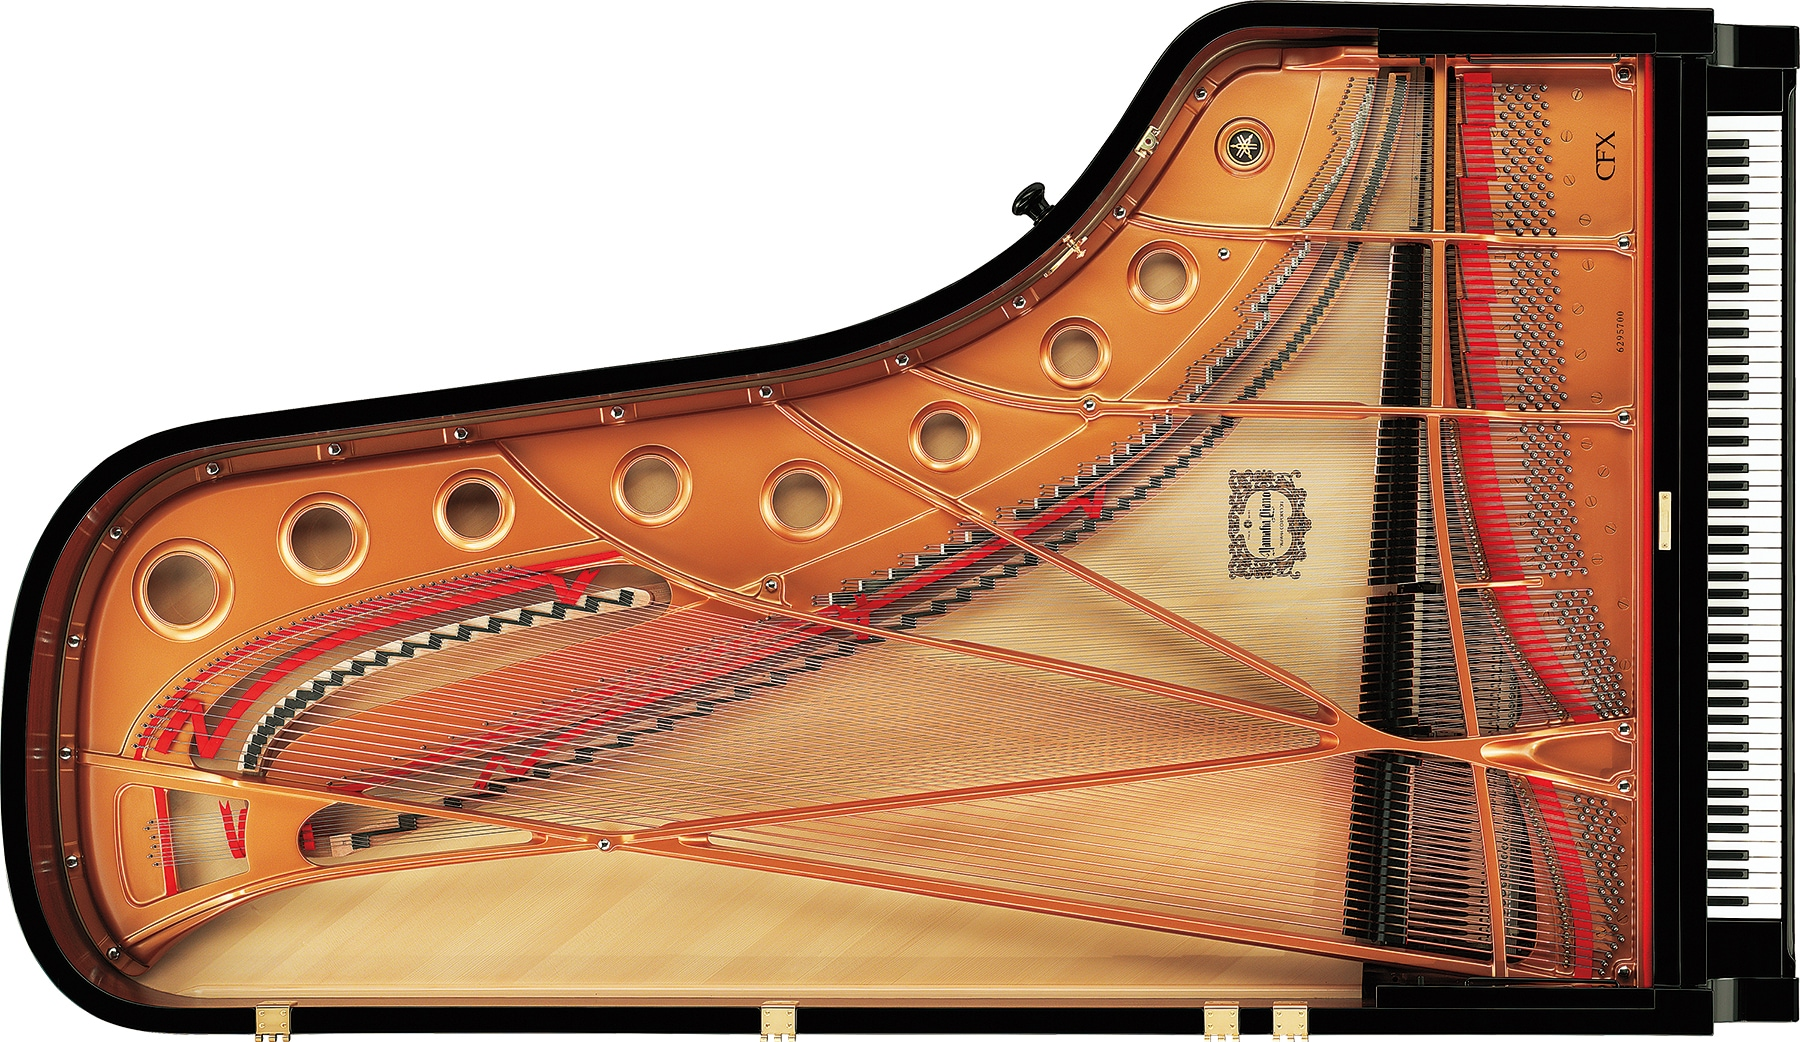 Internal parts of a grand piano